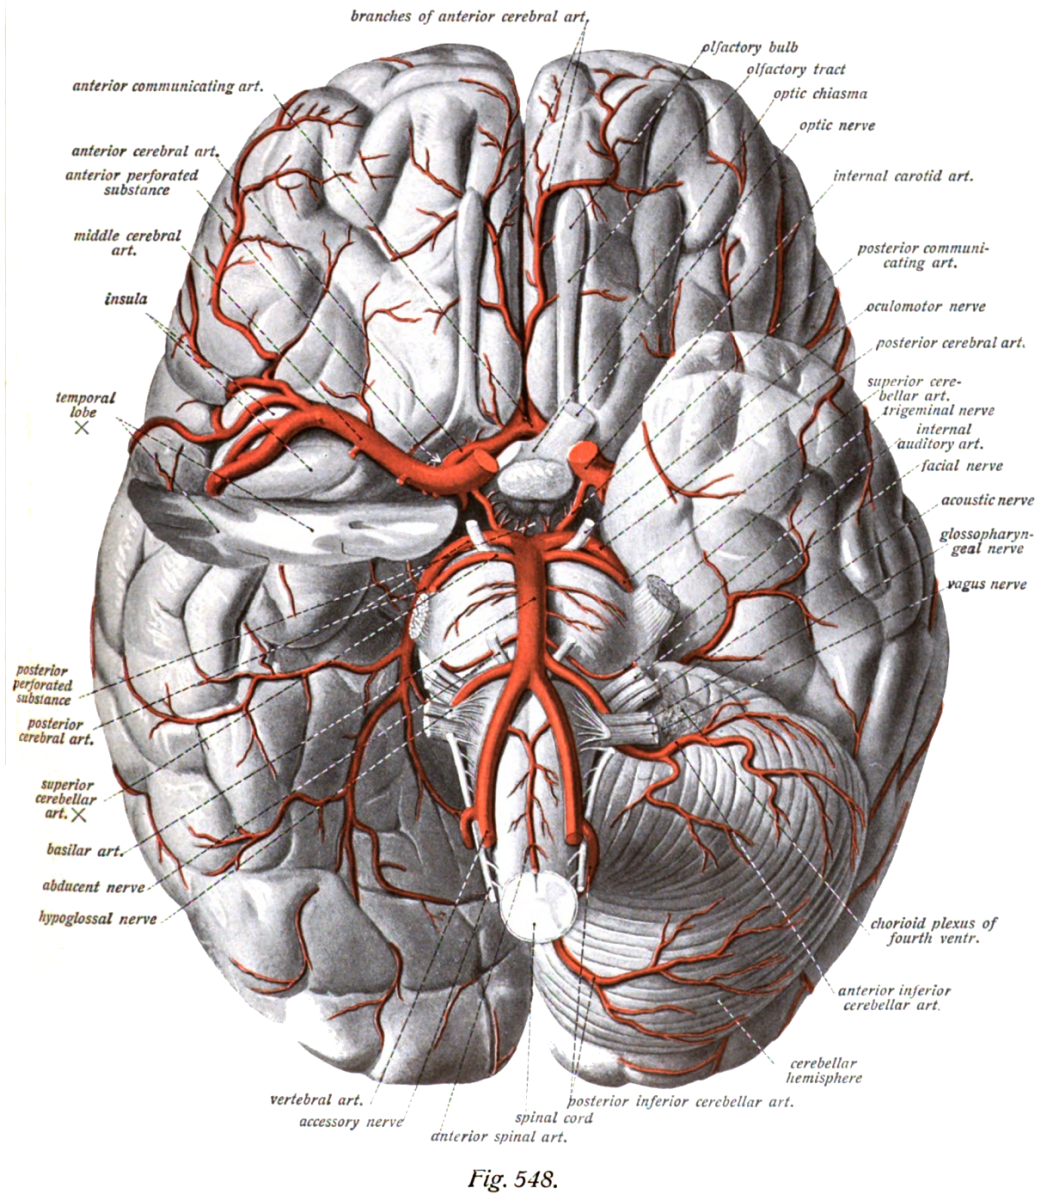 Artery positions in relation to the undersurface of the brain